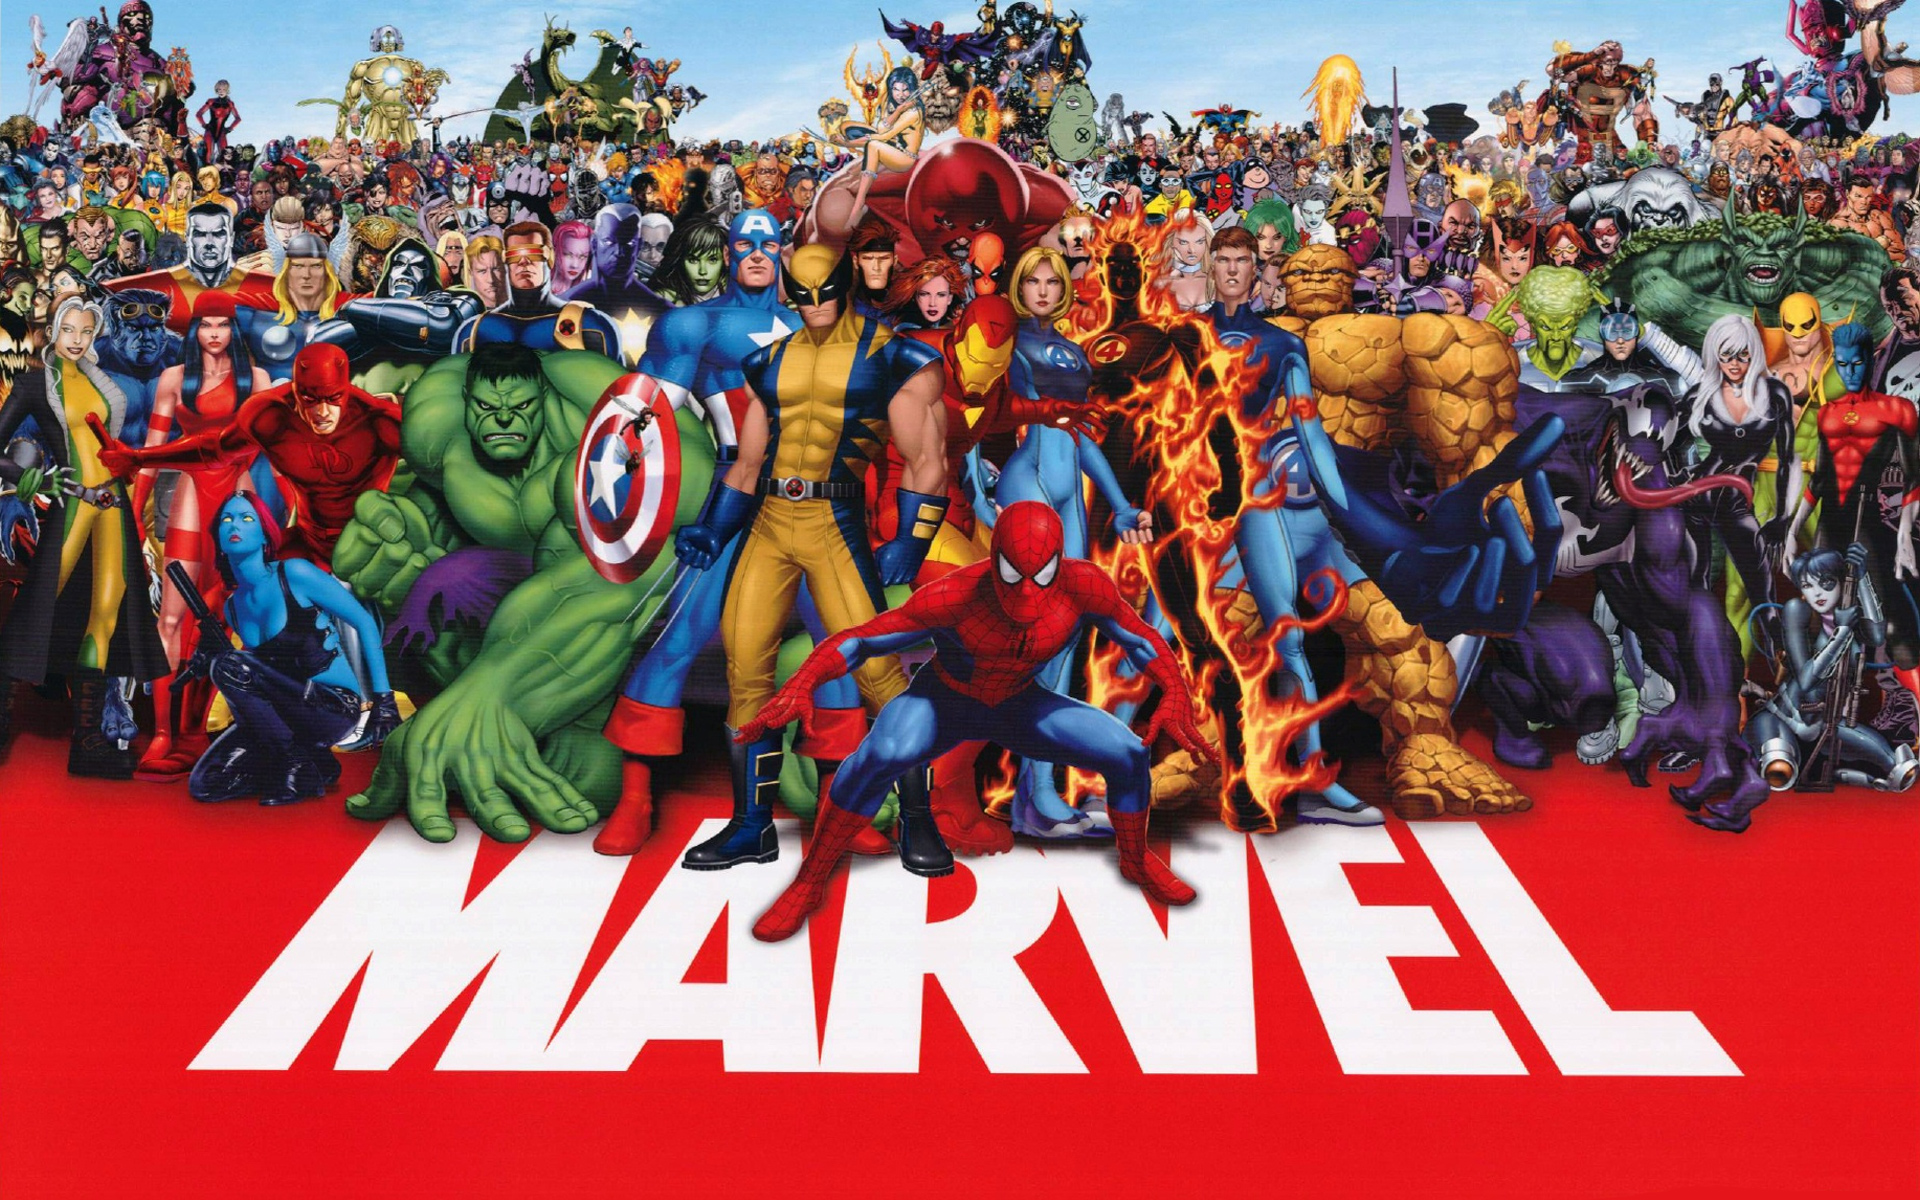 Marvel Super Heroes Wallpaper - WallpaperSafari